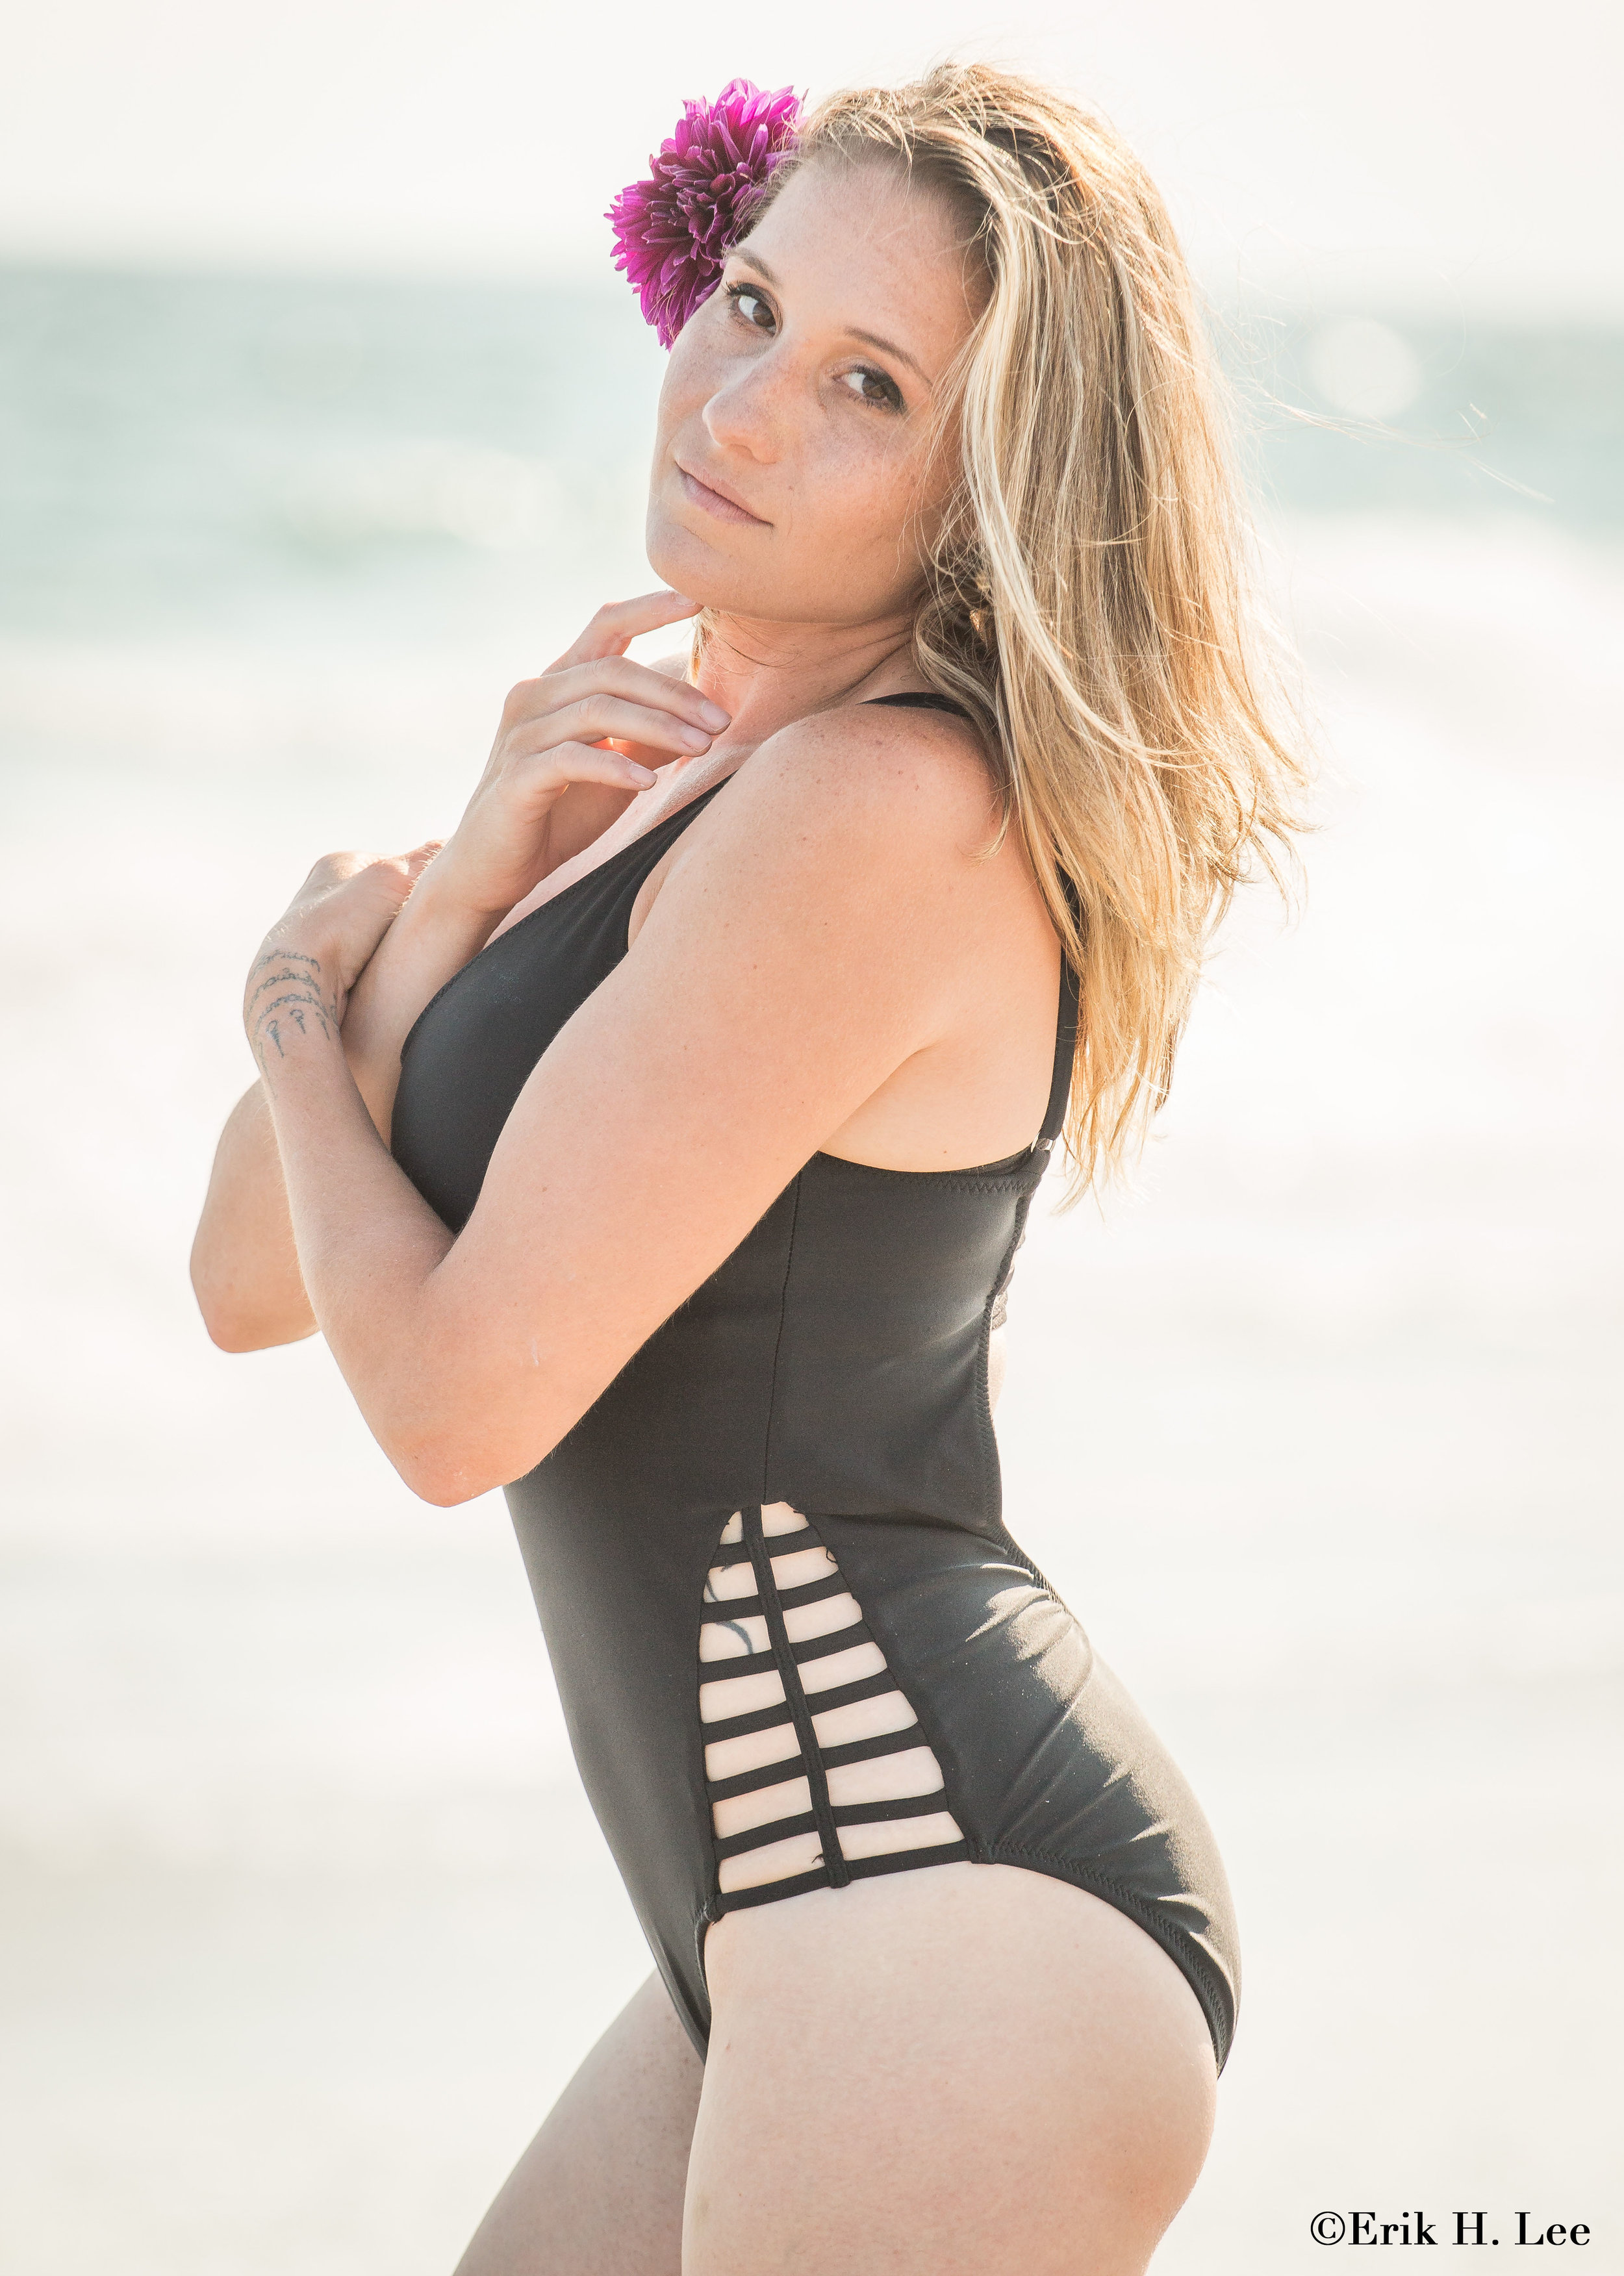 Katie - Photographed at Robert Moses State Park (Long Island), unknown swimwear.